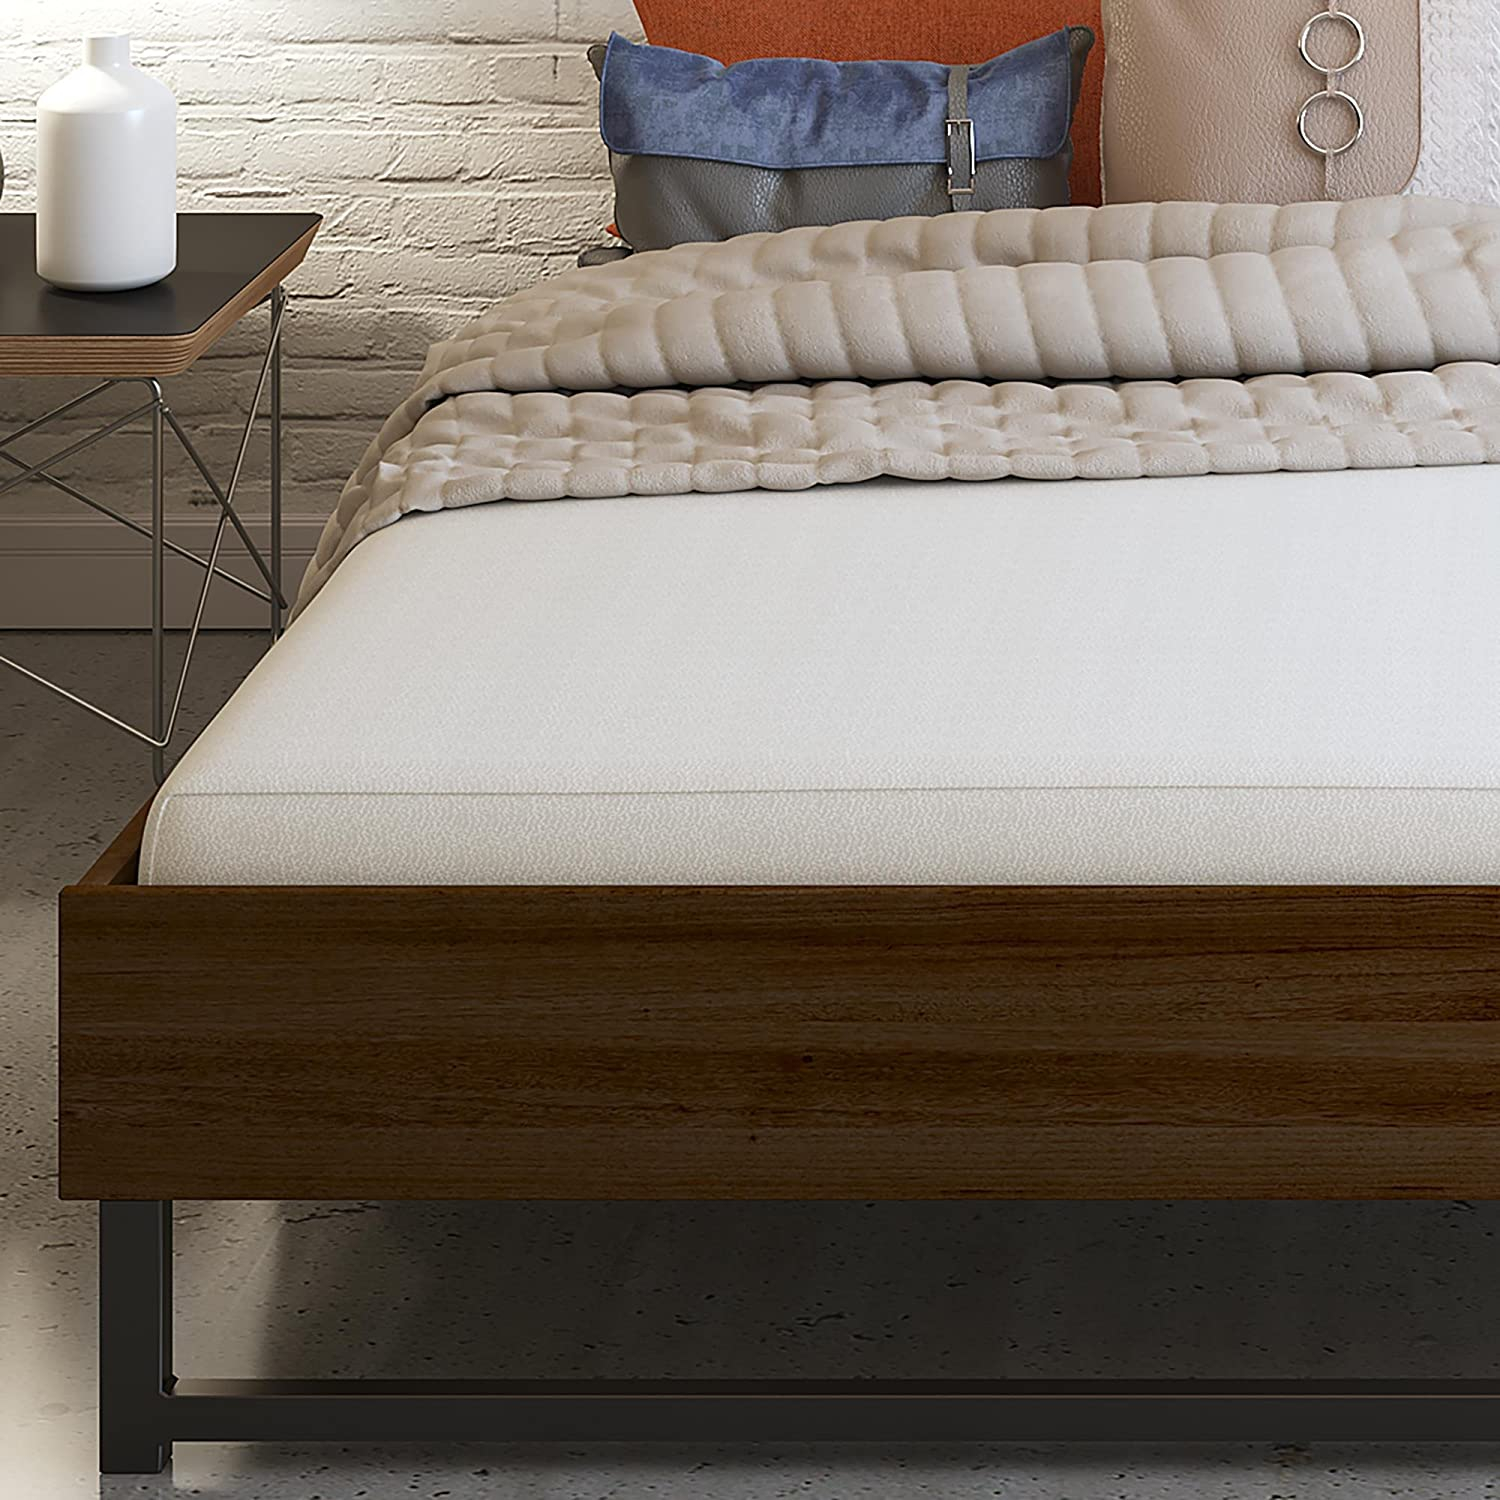 what type of mattress is best for a platform bed